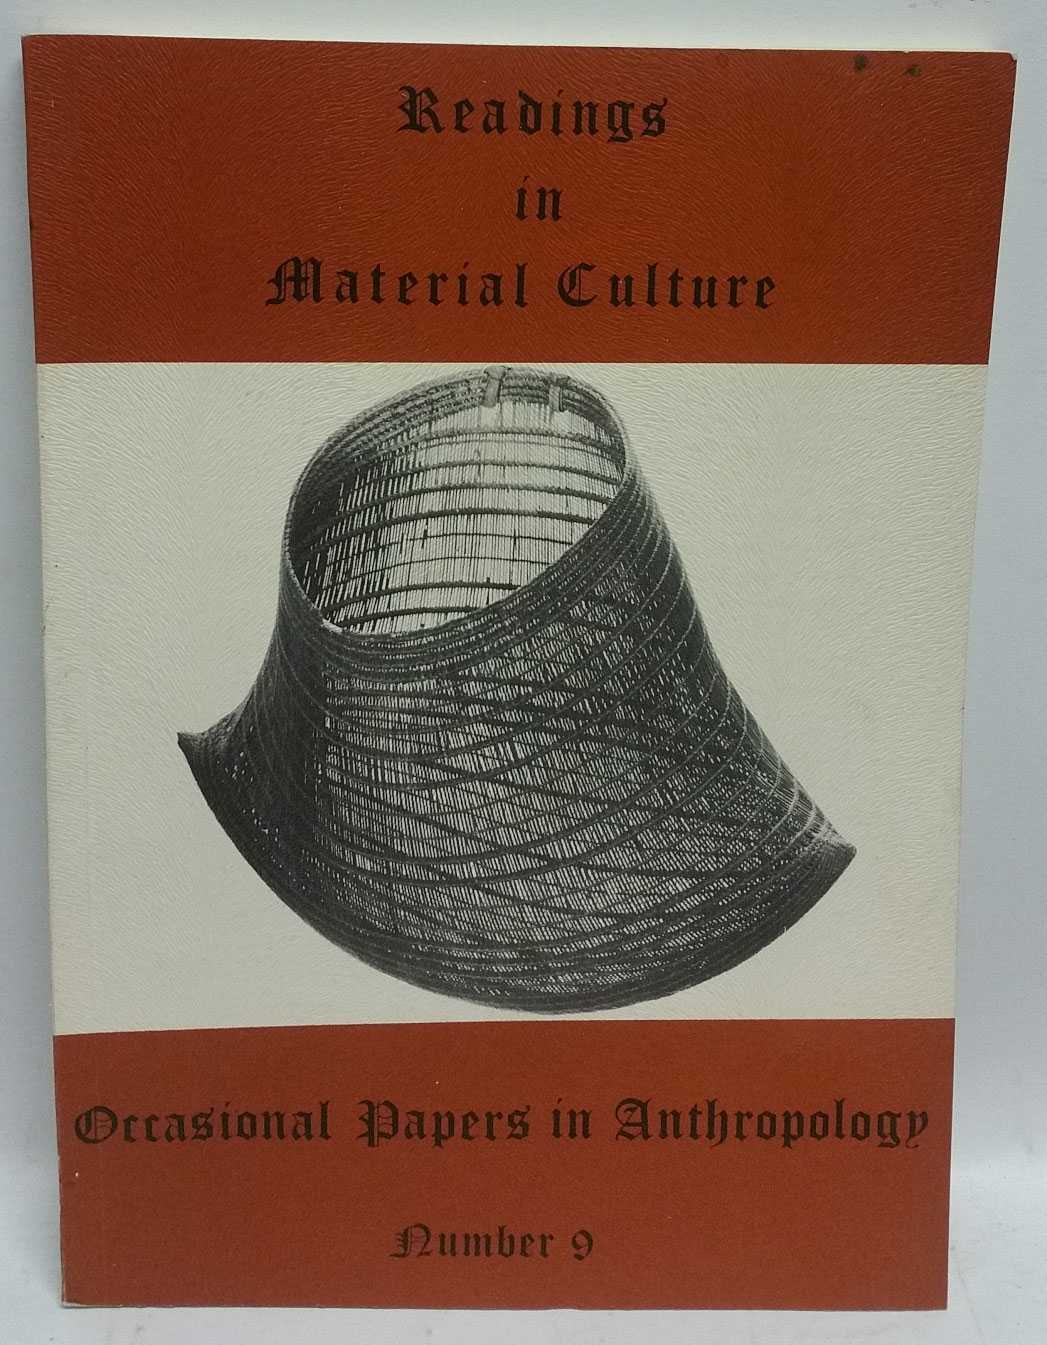 Readings in Material Culture (Occasional Papers in Anthropology Number 9), Johan Kamminga